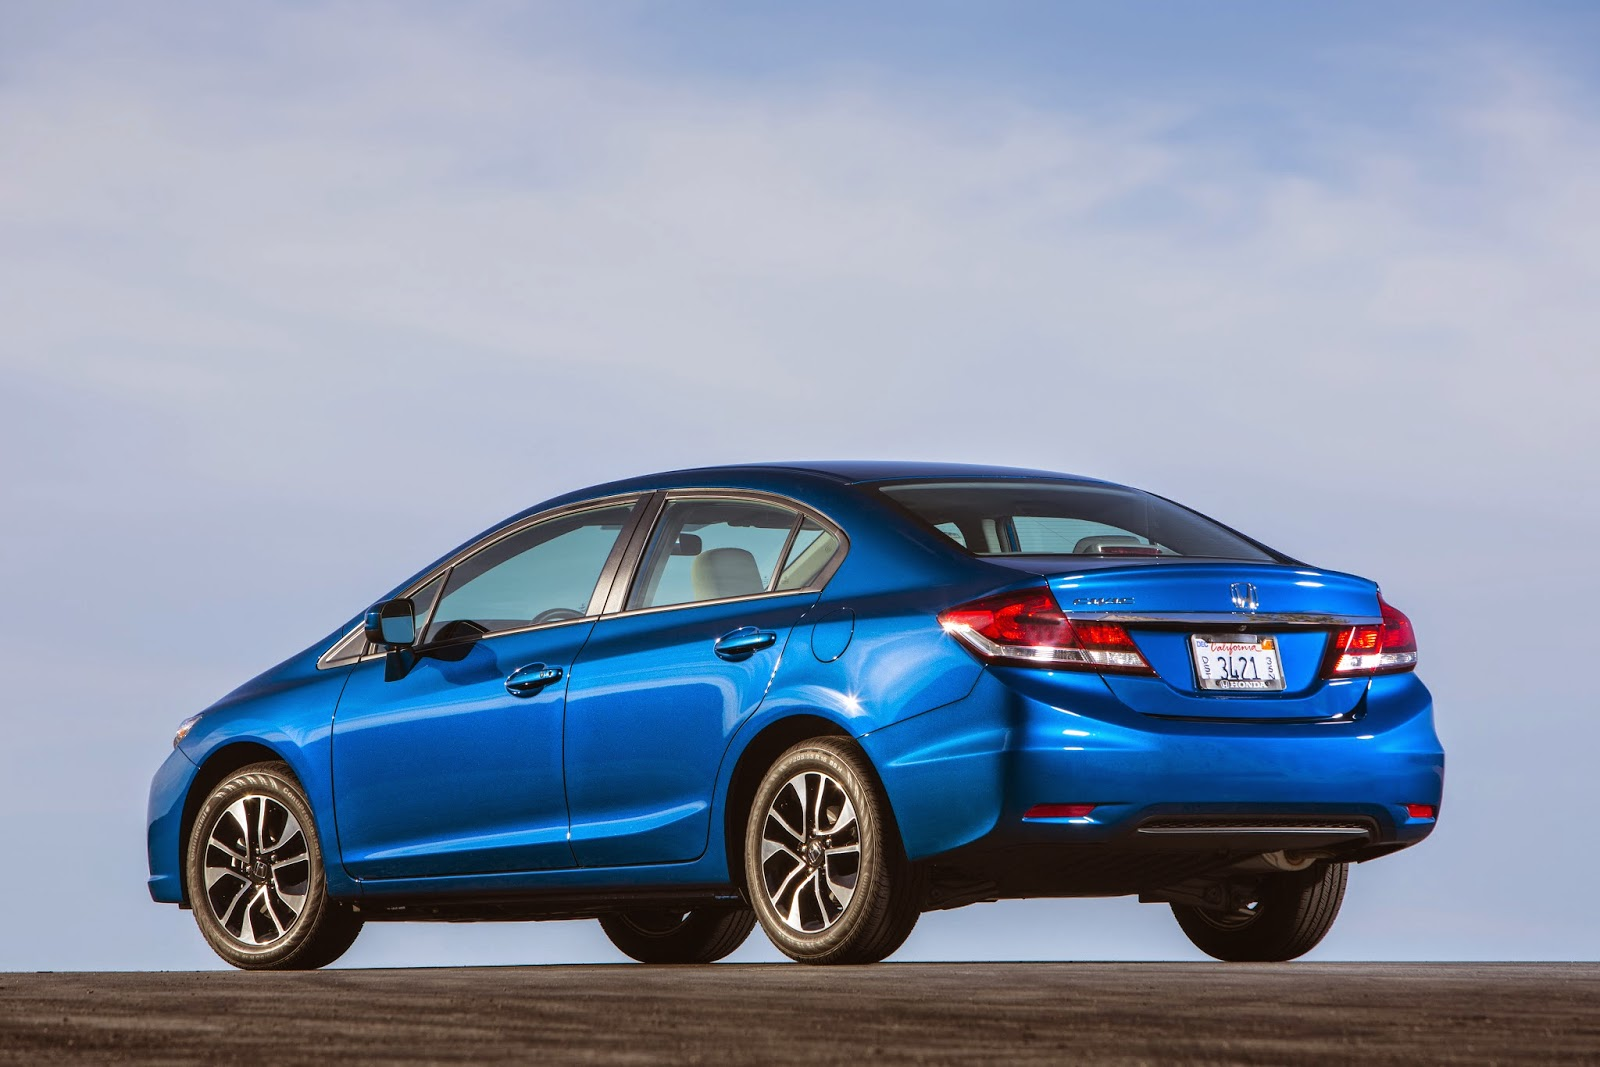 Why The 2014 Honda Civic Has A Fight On Its Hands